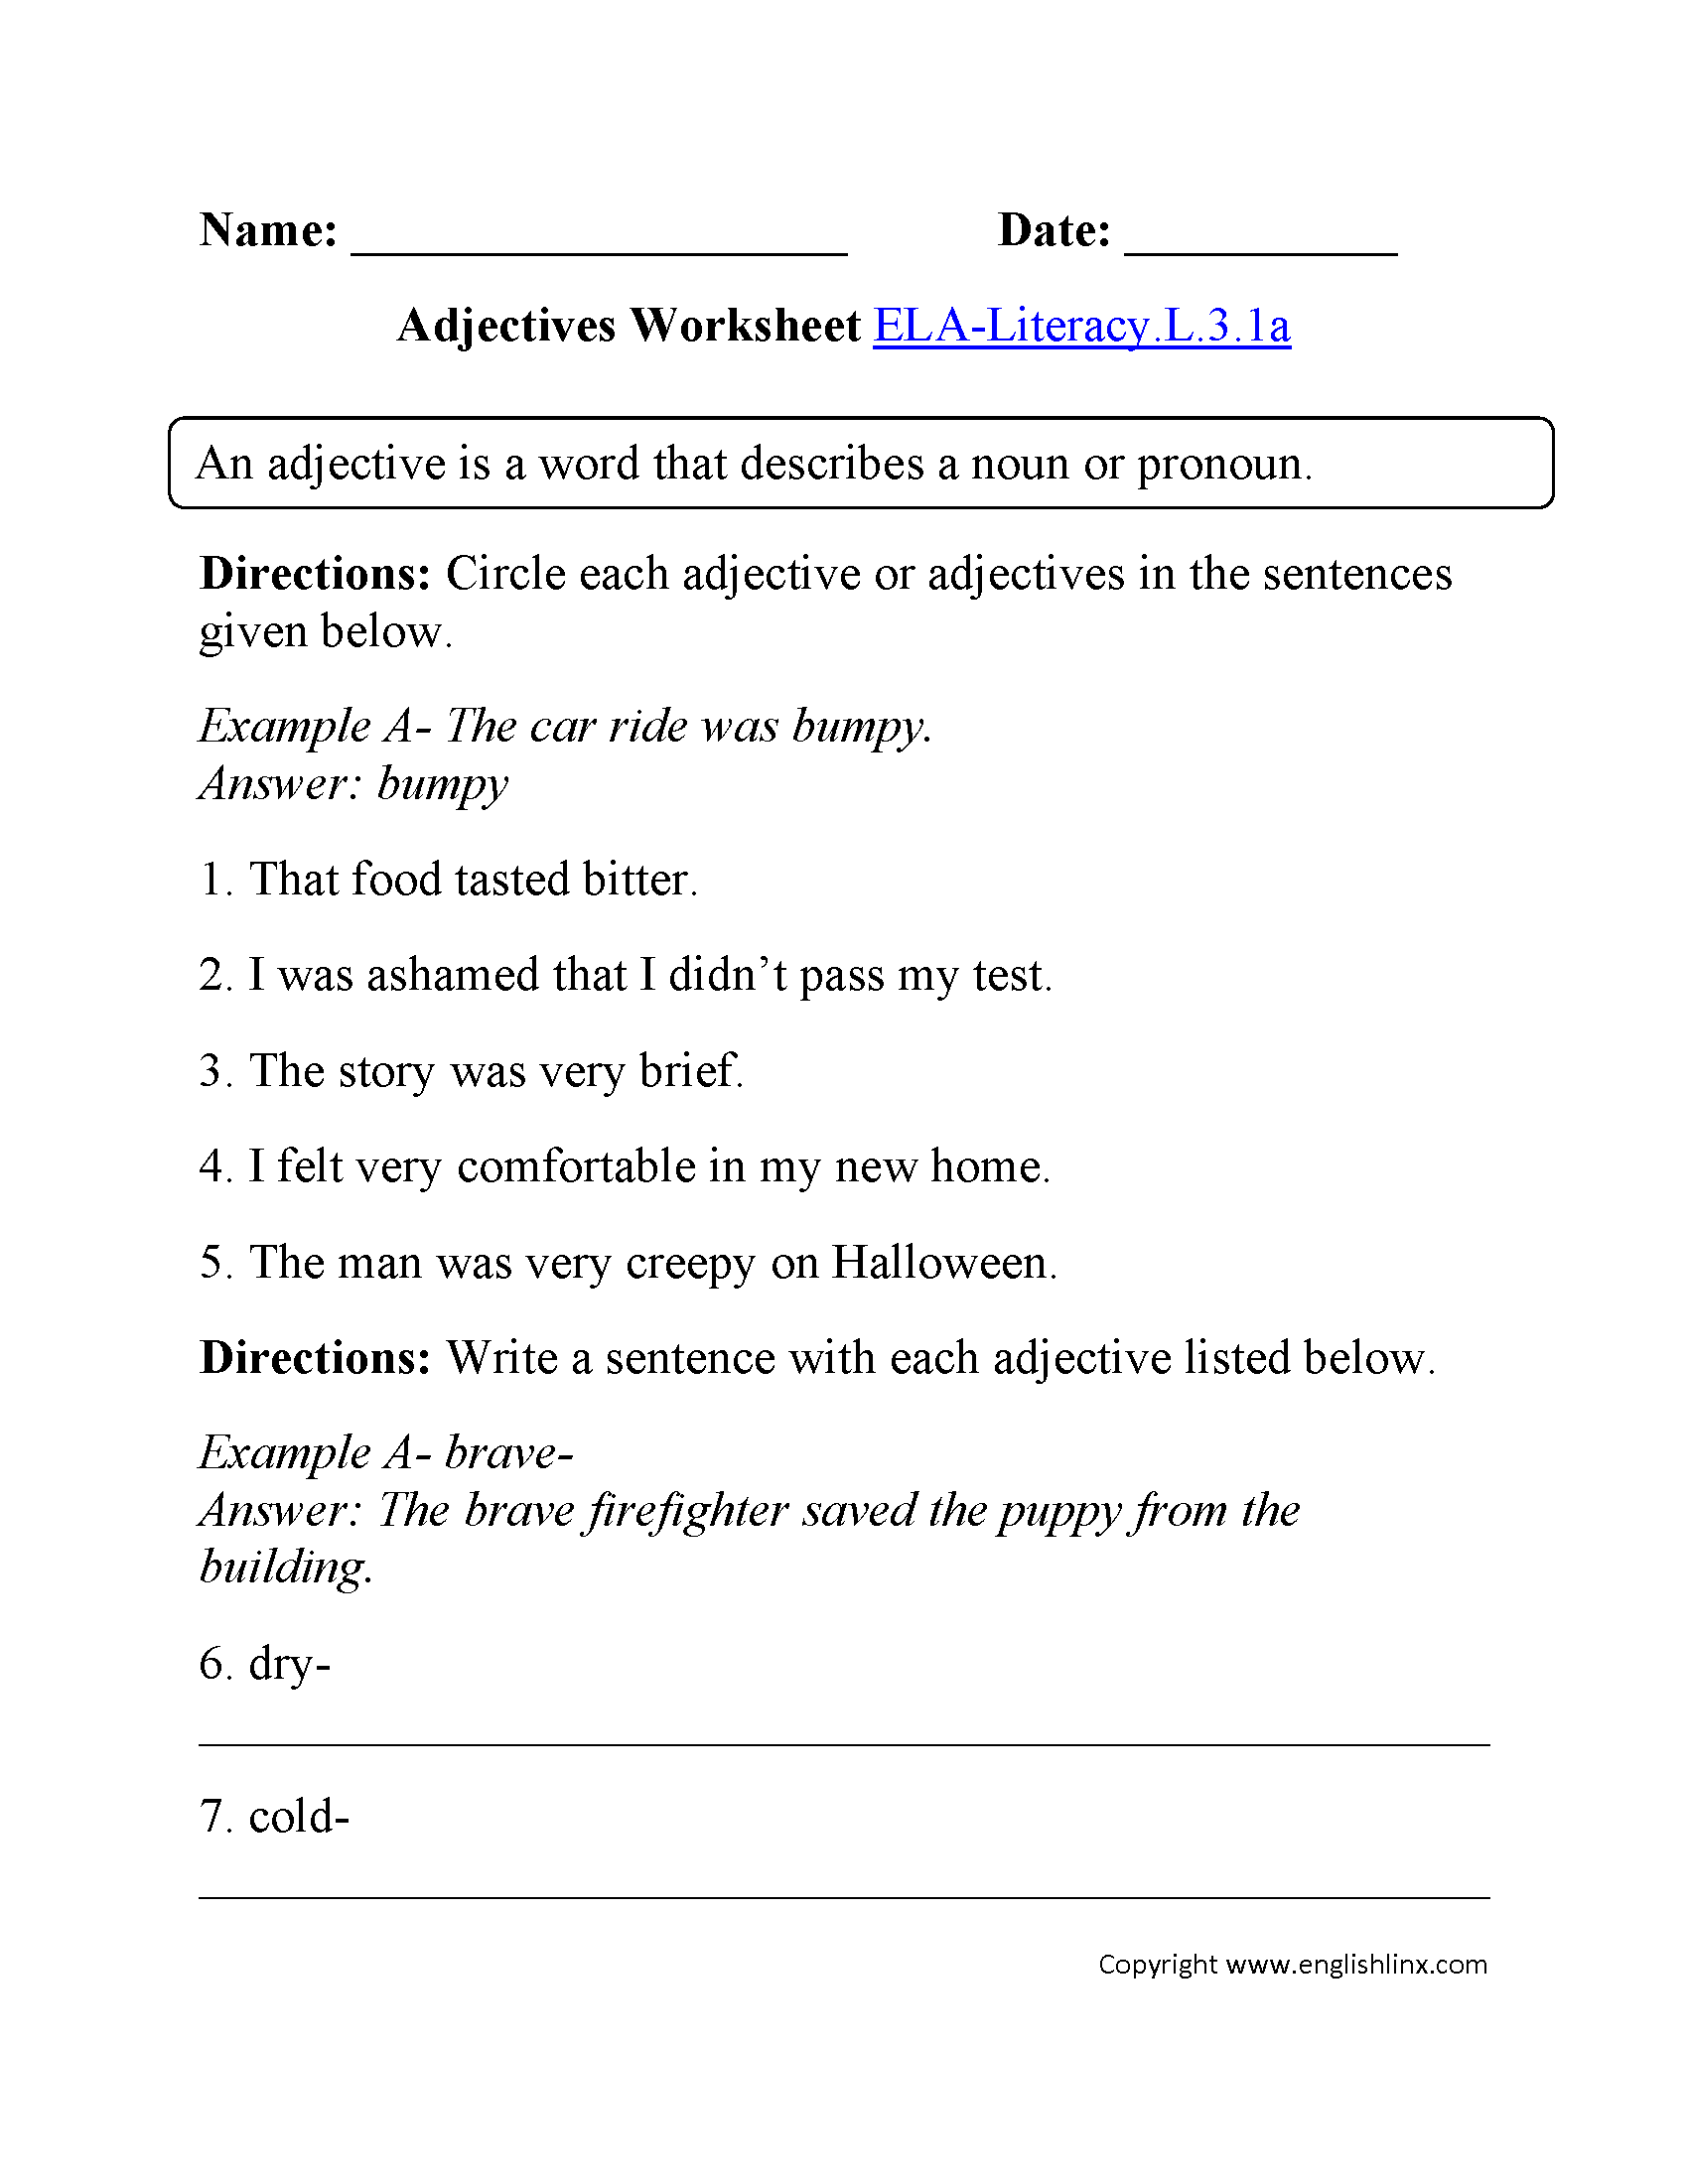 Worksheet Adjective Worksheets For Grade 2 3rd grade common core language worksheets adjectives worksheet 2 ela literacy l 3 1a worksheet